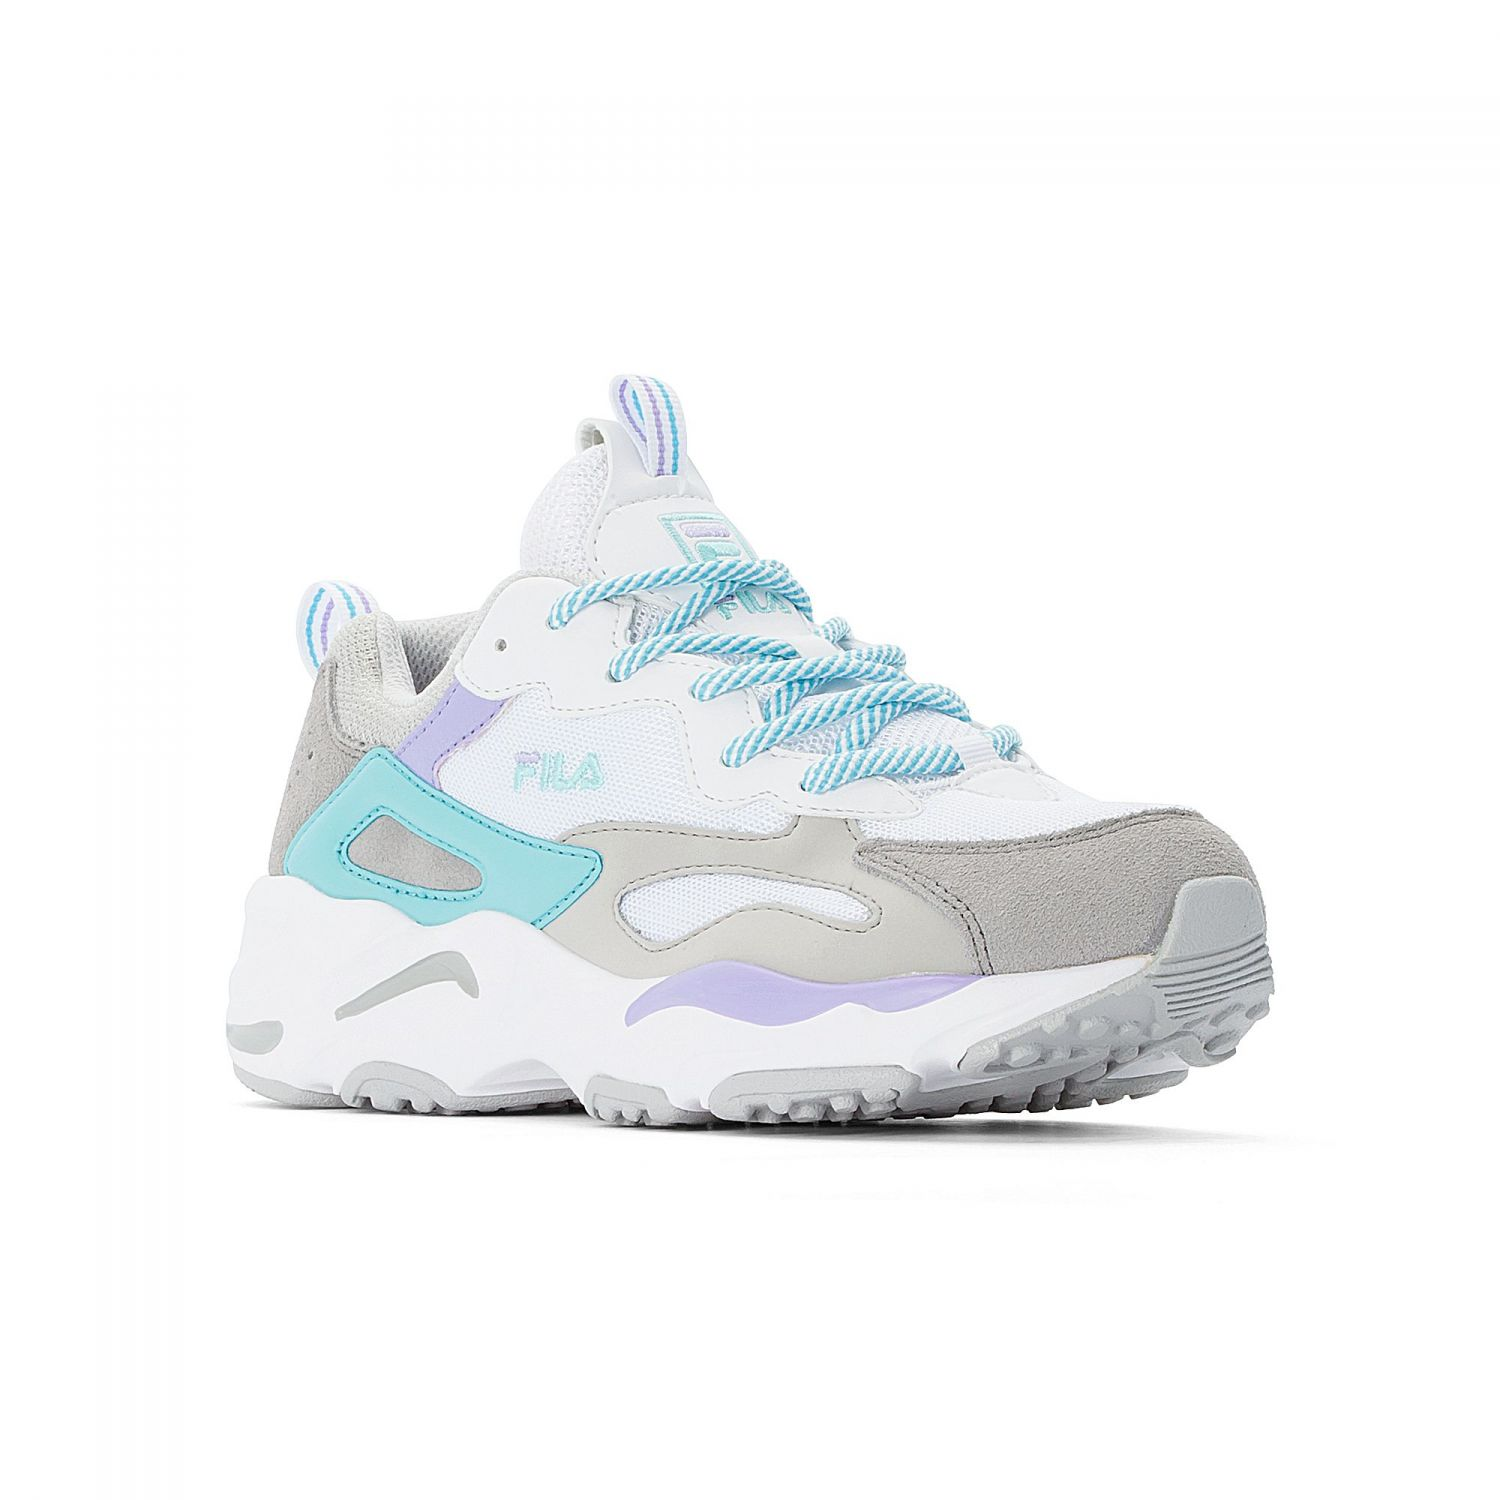 a262ee934 Fila Ray Tracer Wmn white-violet-blue - blue | FILA Official